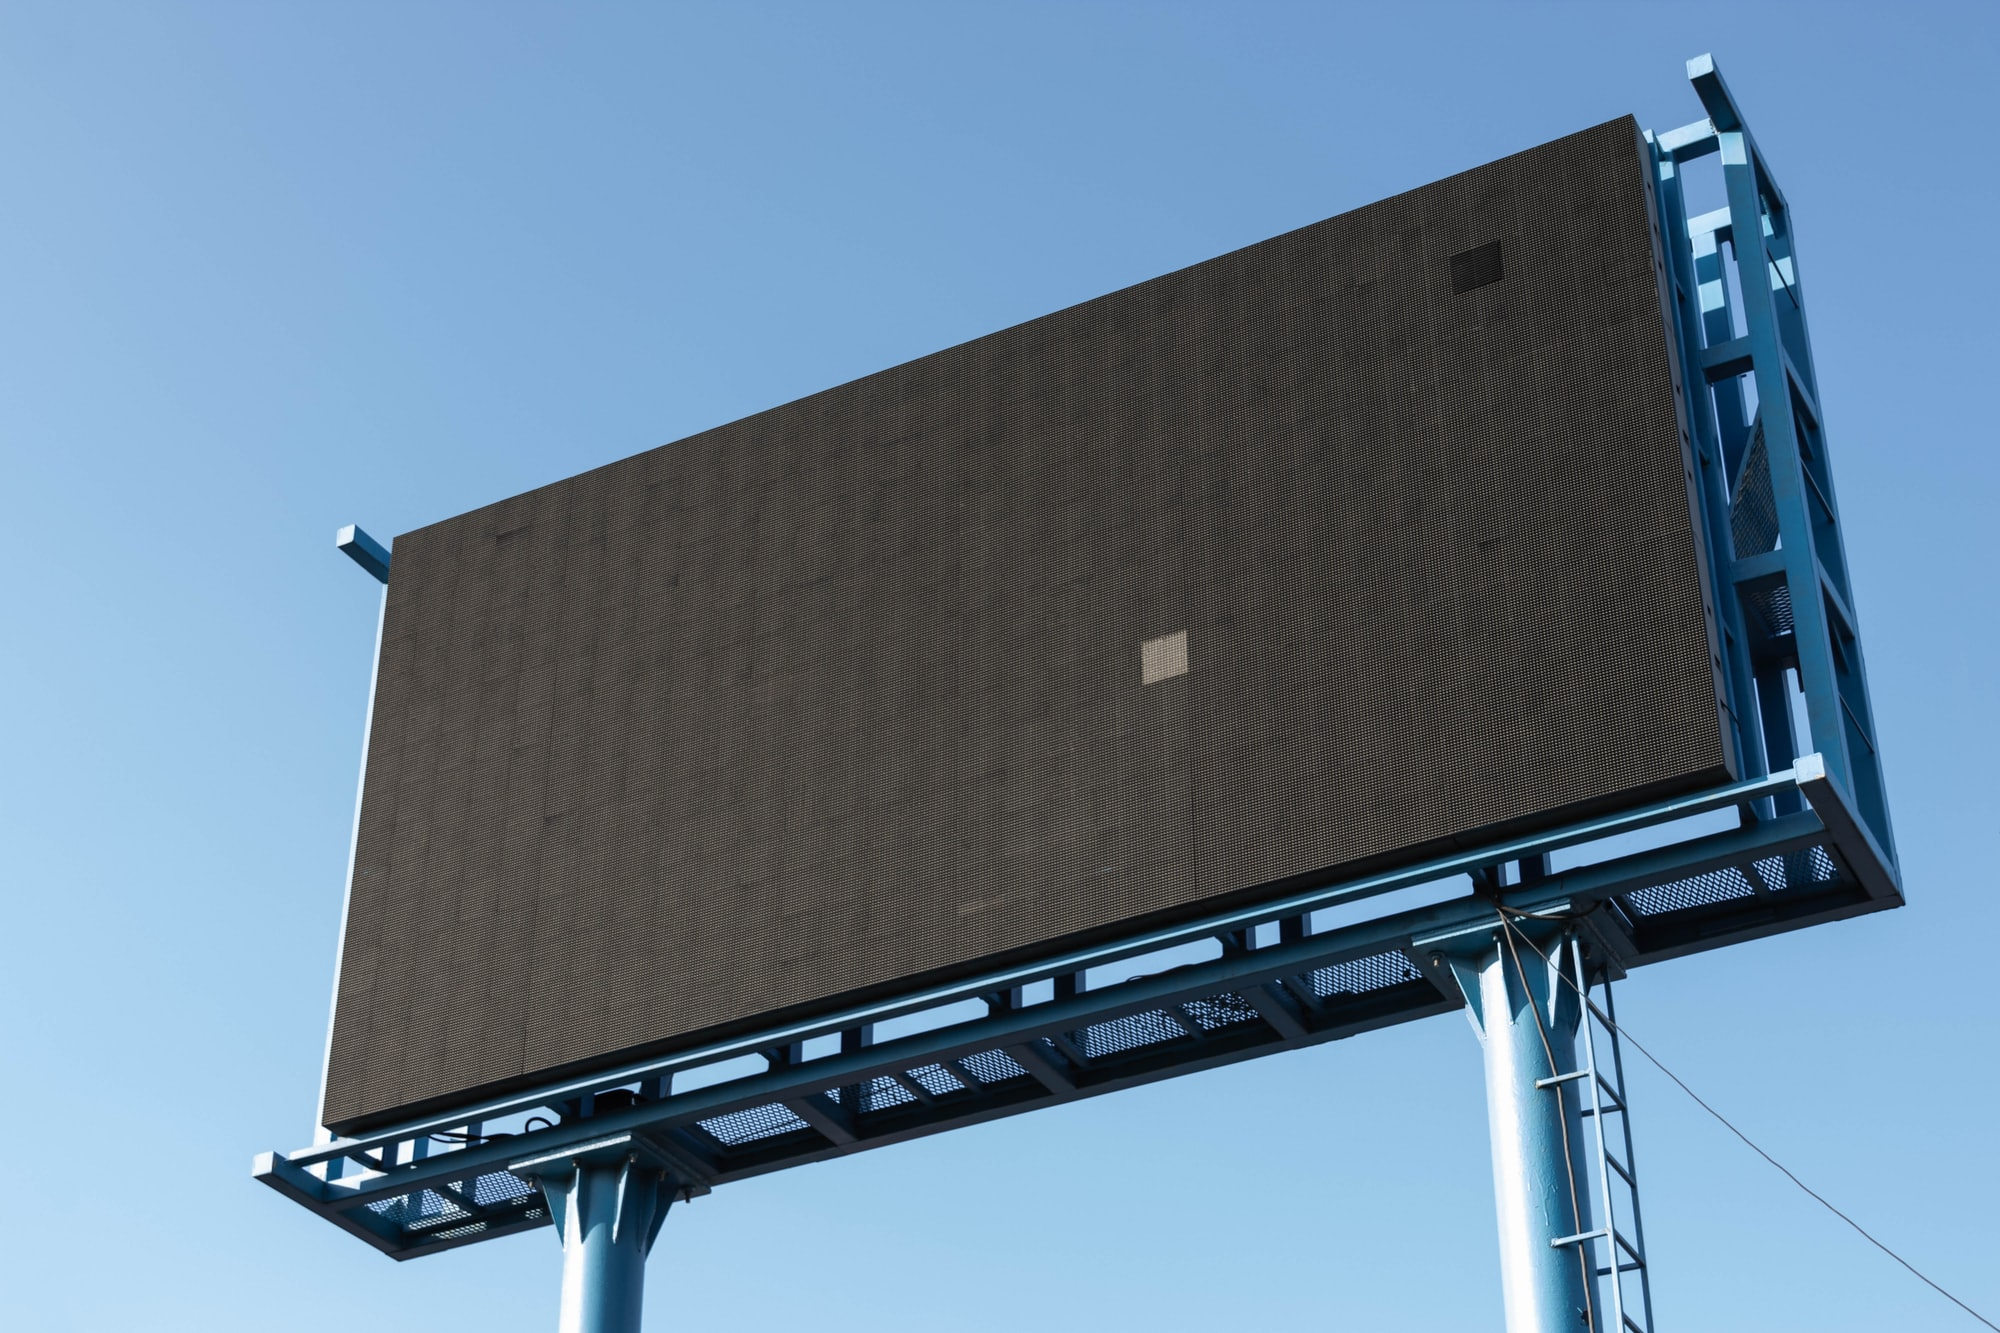 The reason for me to photograph this billboard is that it was turned off :)